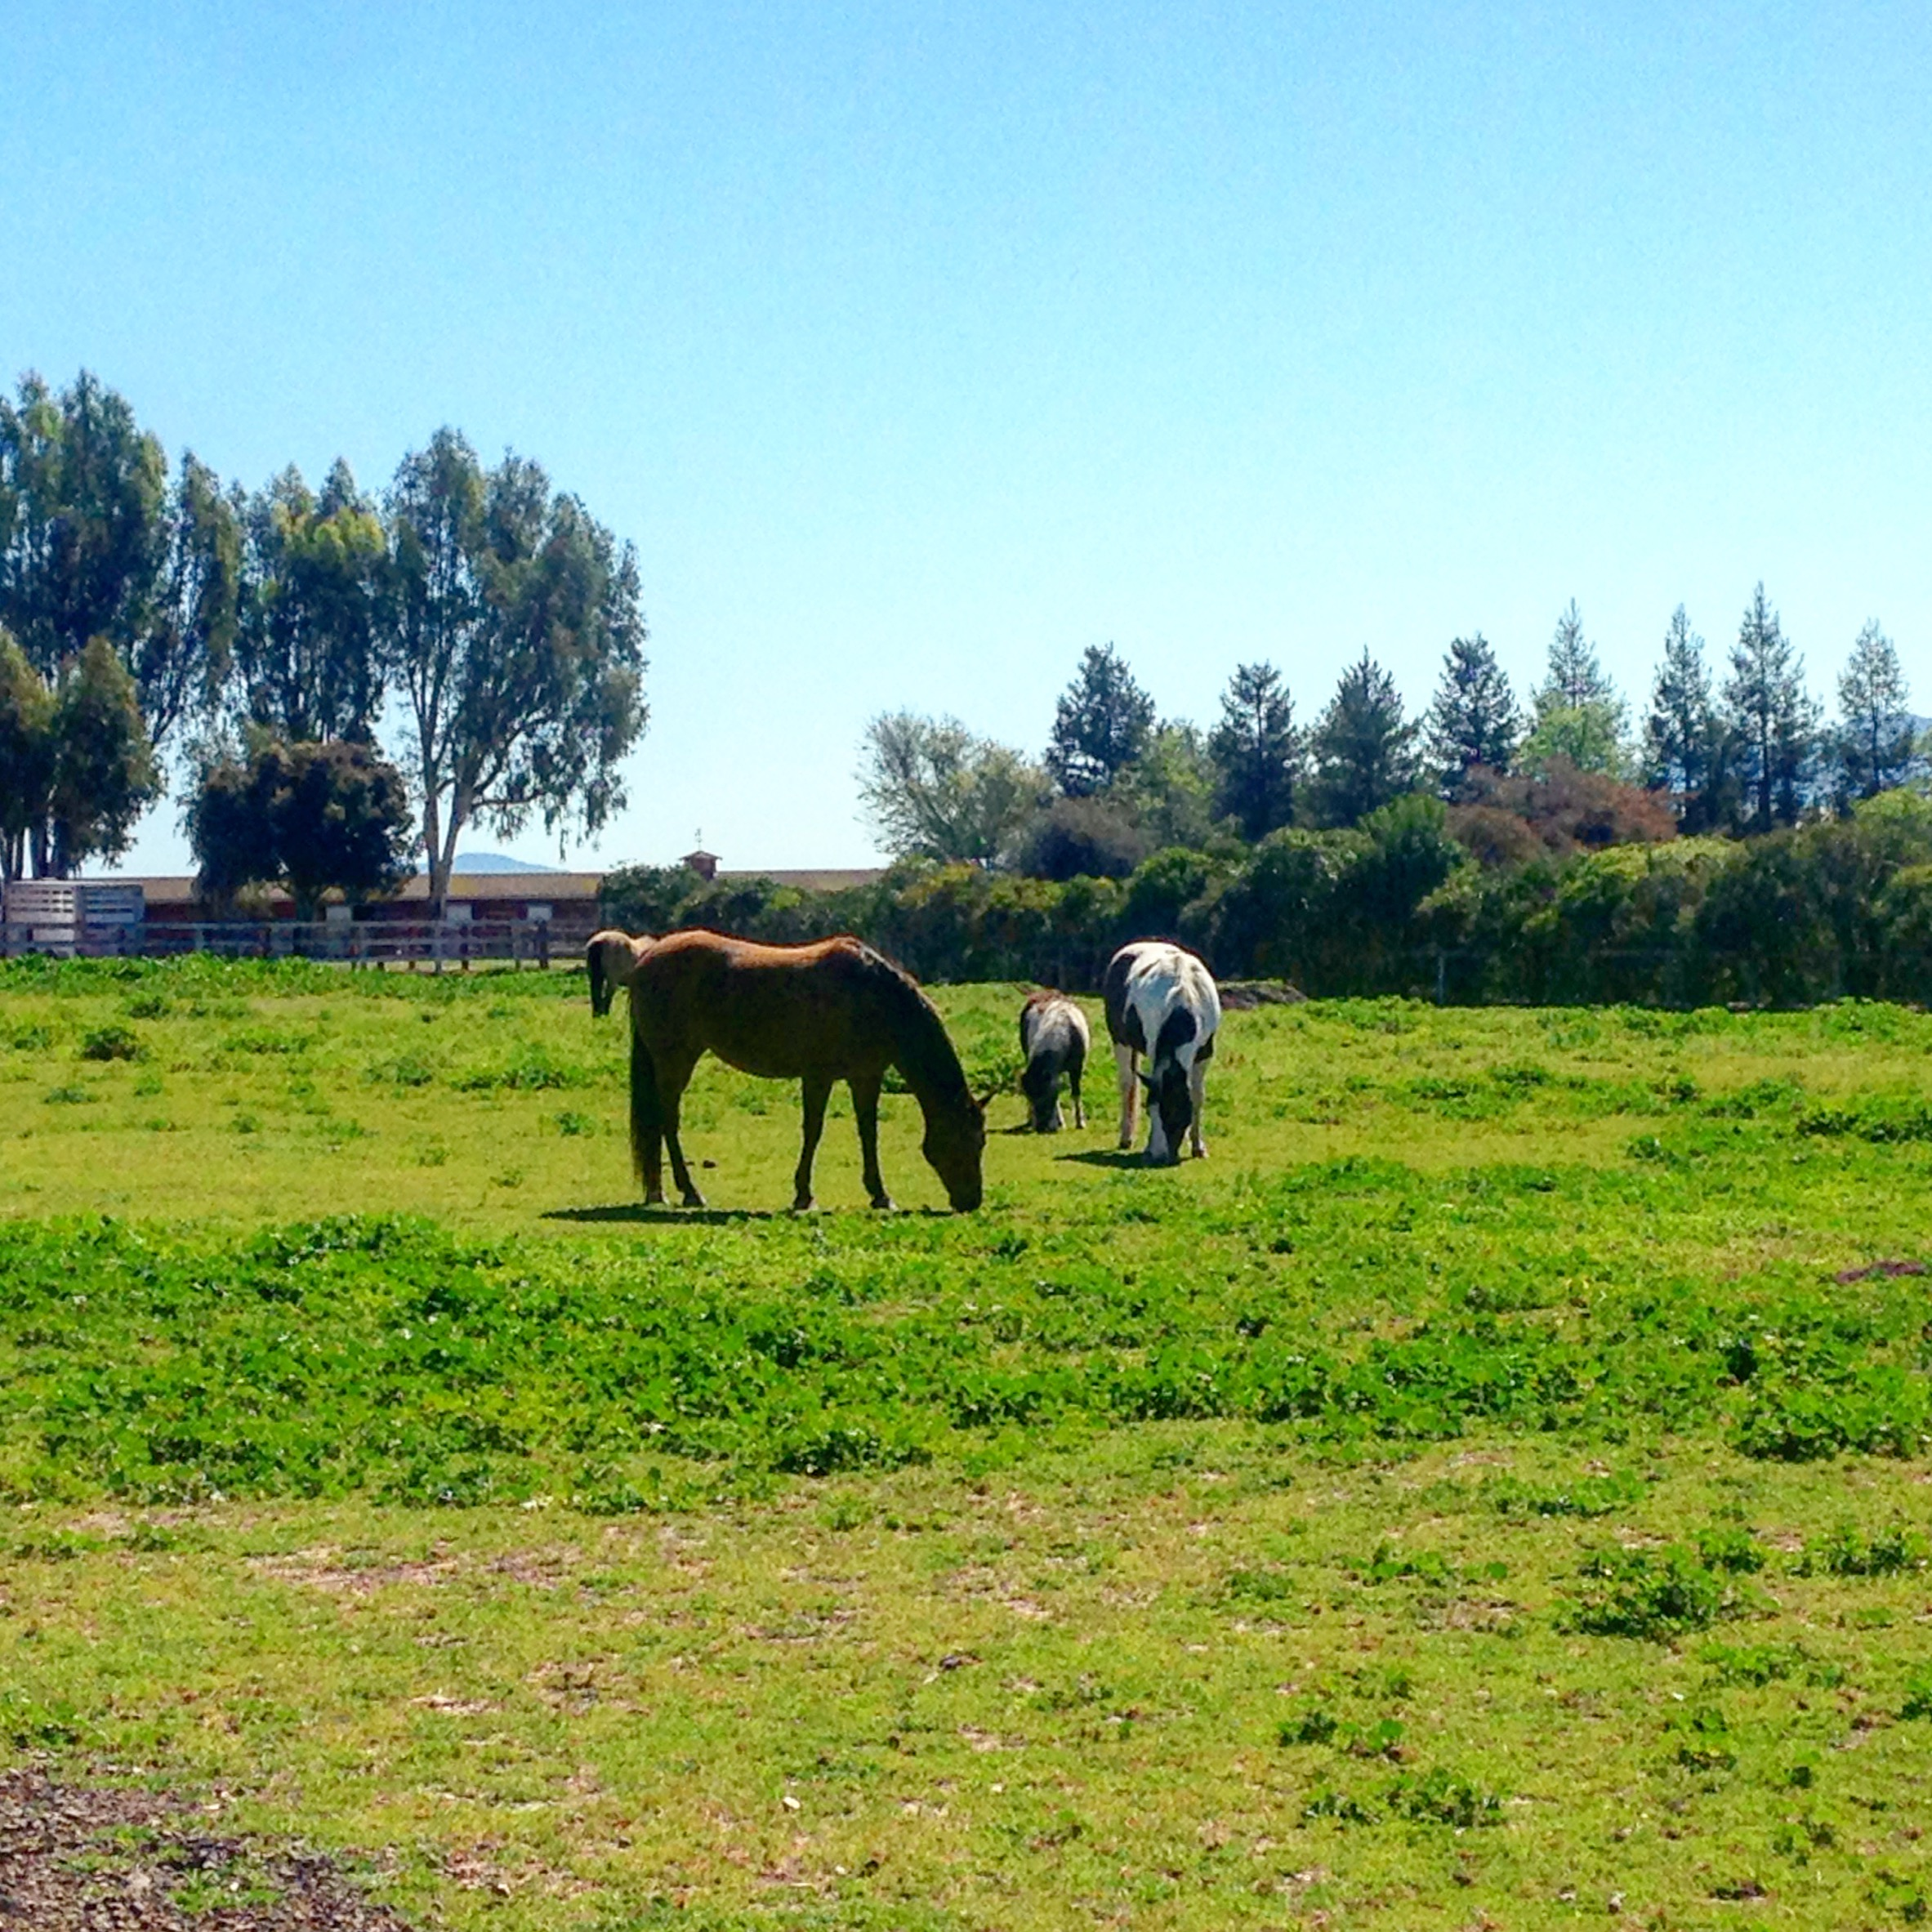 Horses at the Airbnb in Santa Ynez